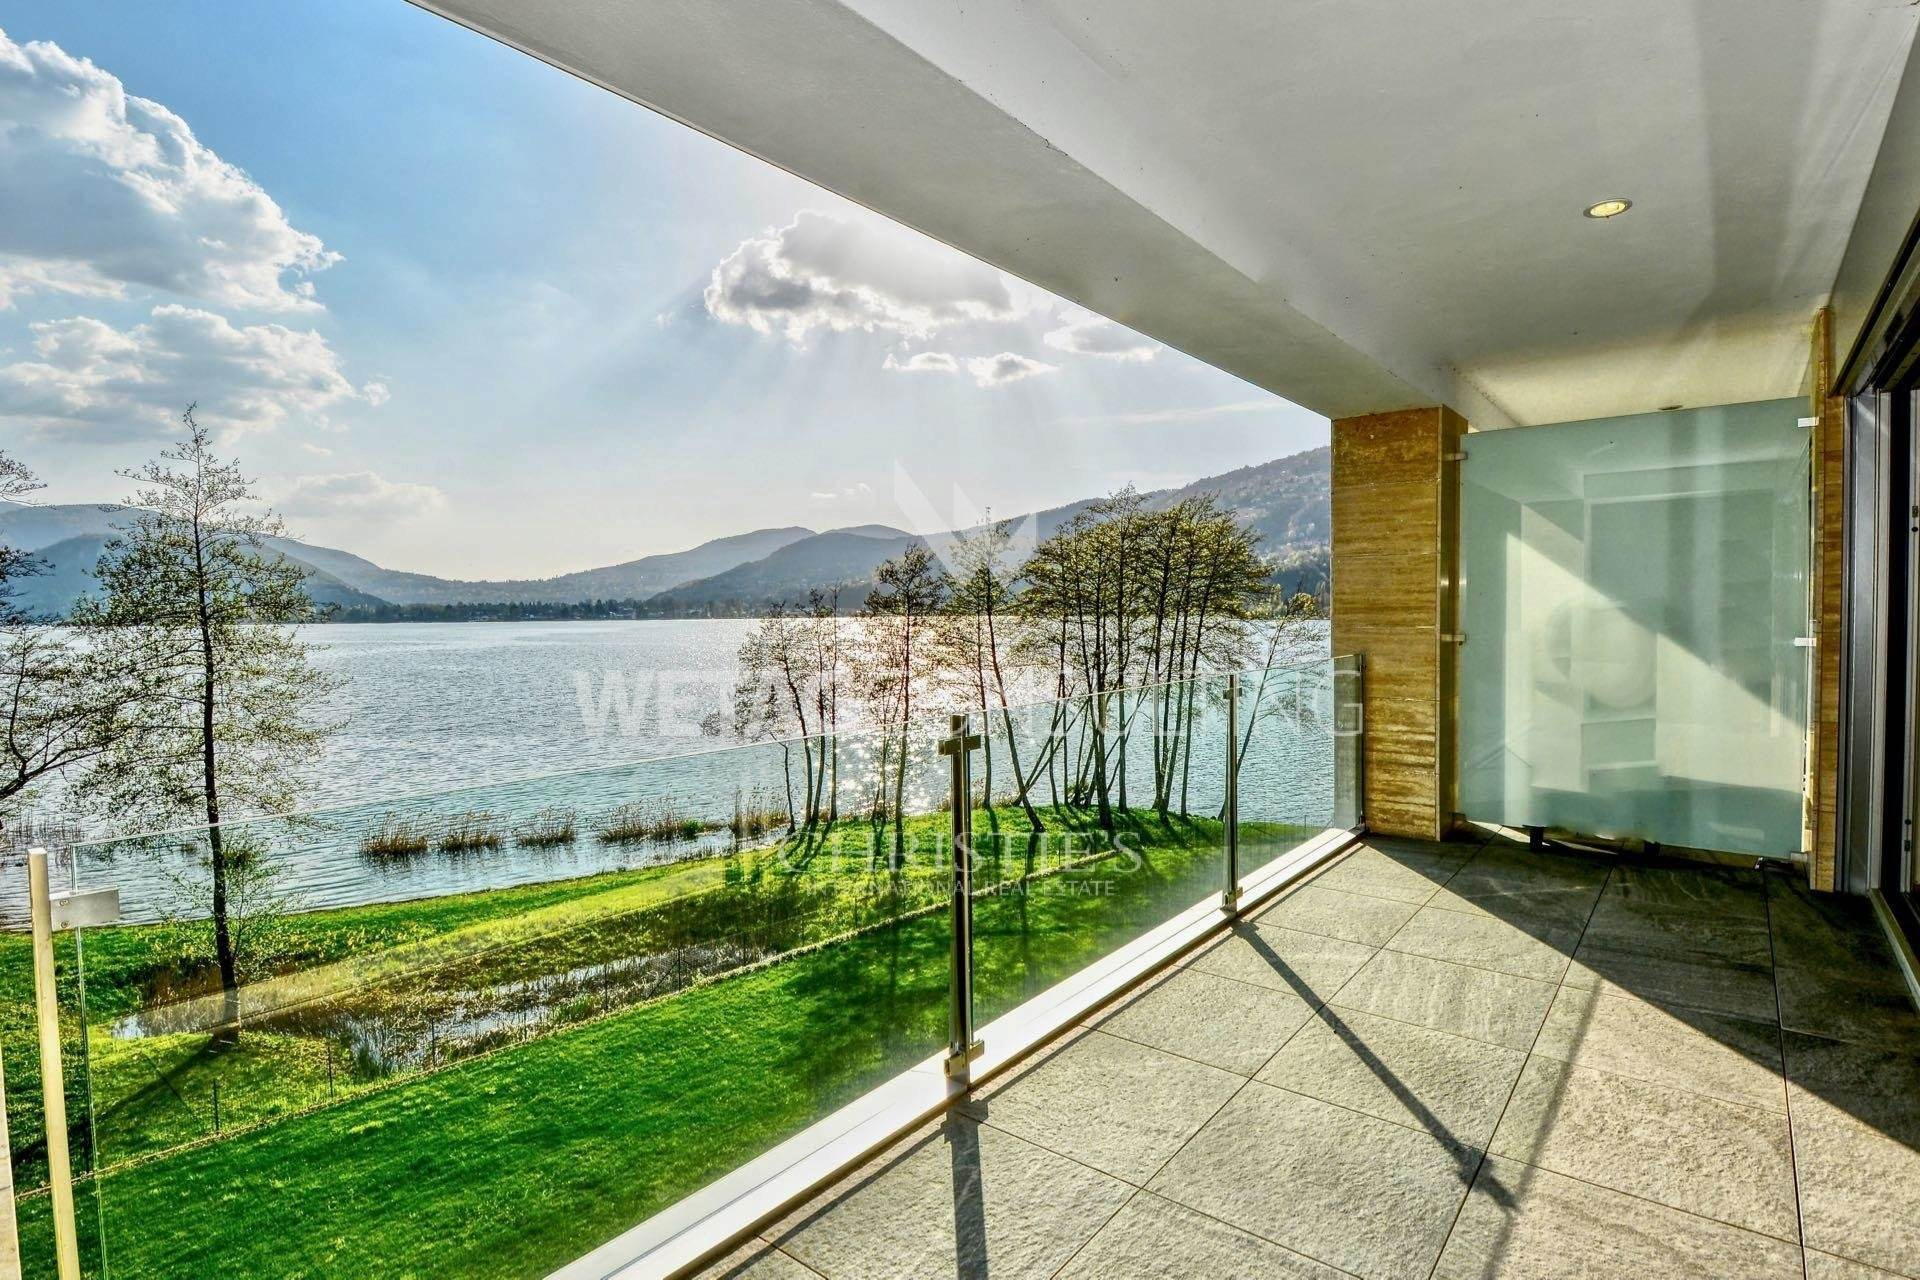 Residence/Apartment for Sale at Apartment for sale in Muzzano with wonderful Lake Lugano view Muzzano, Ticino,6933 Switzerland